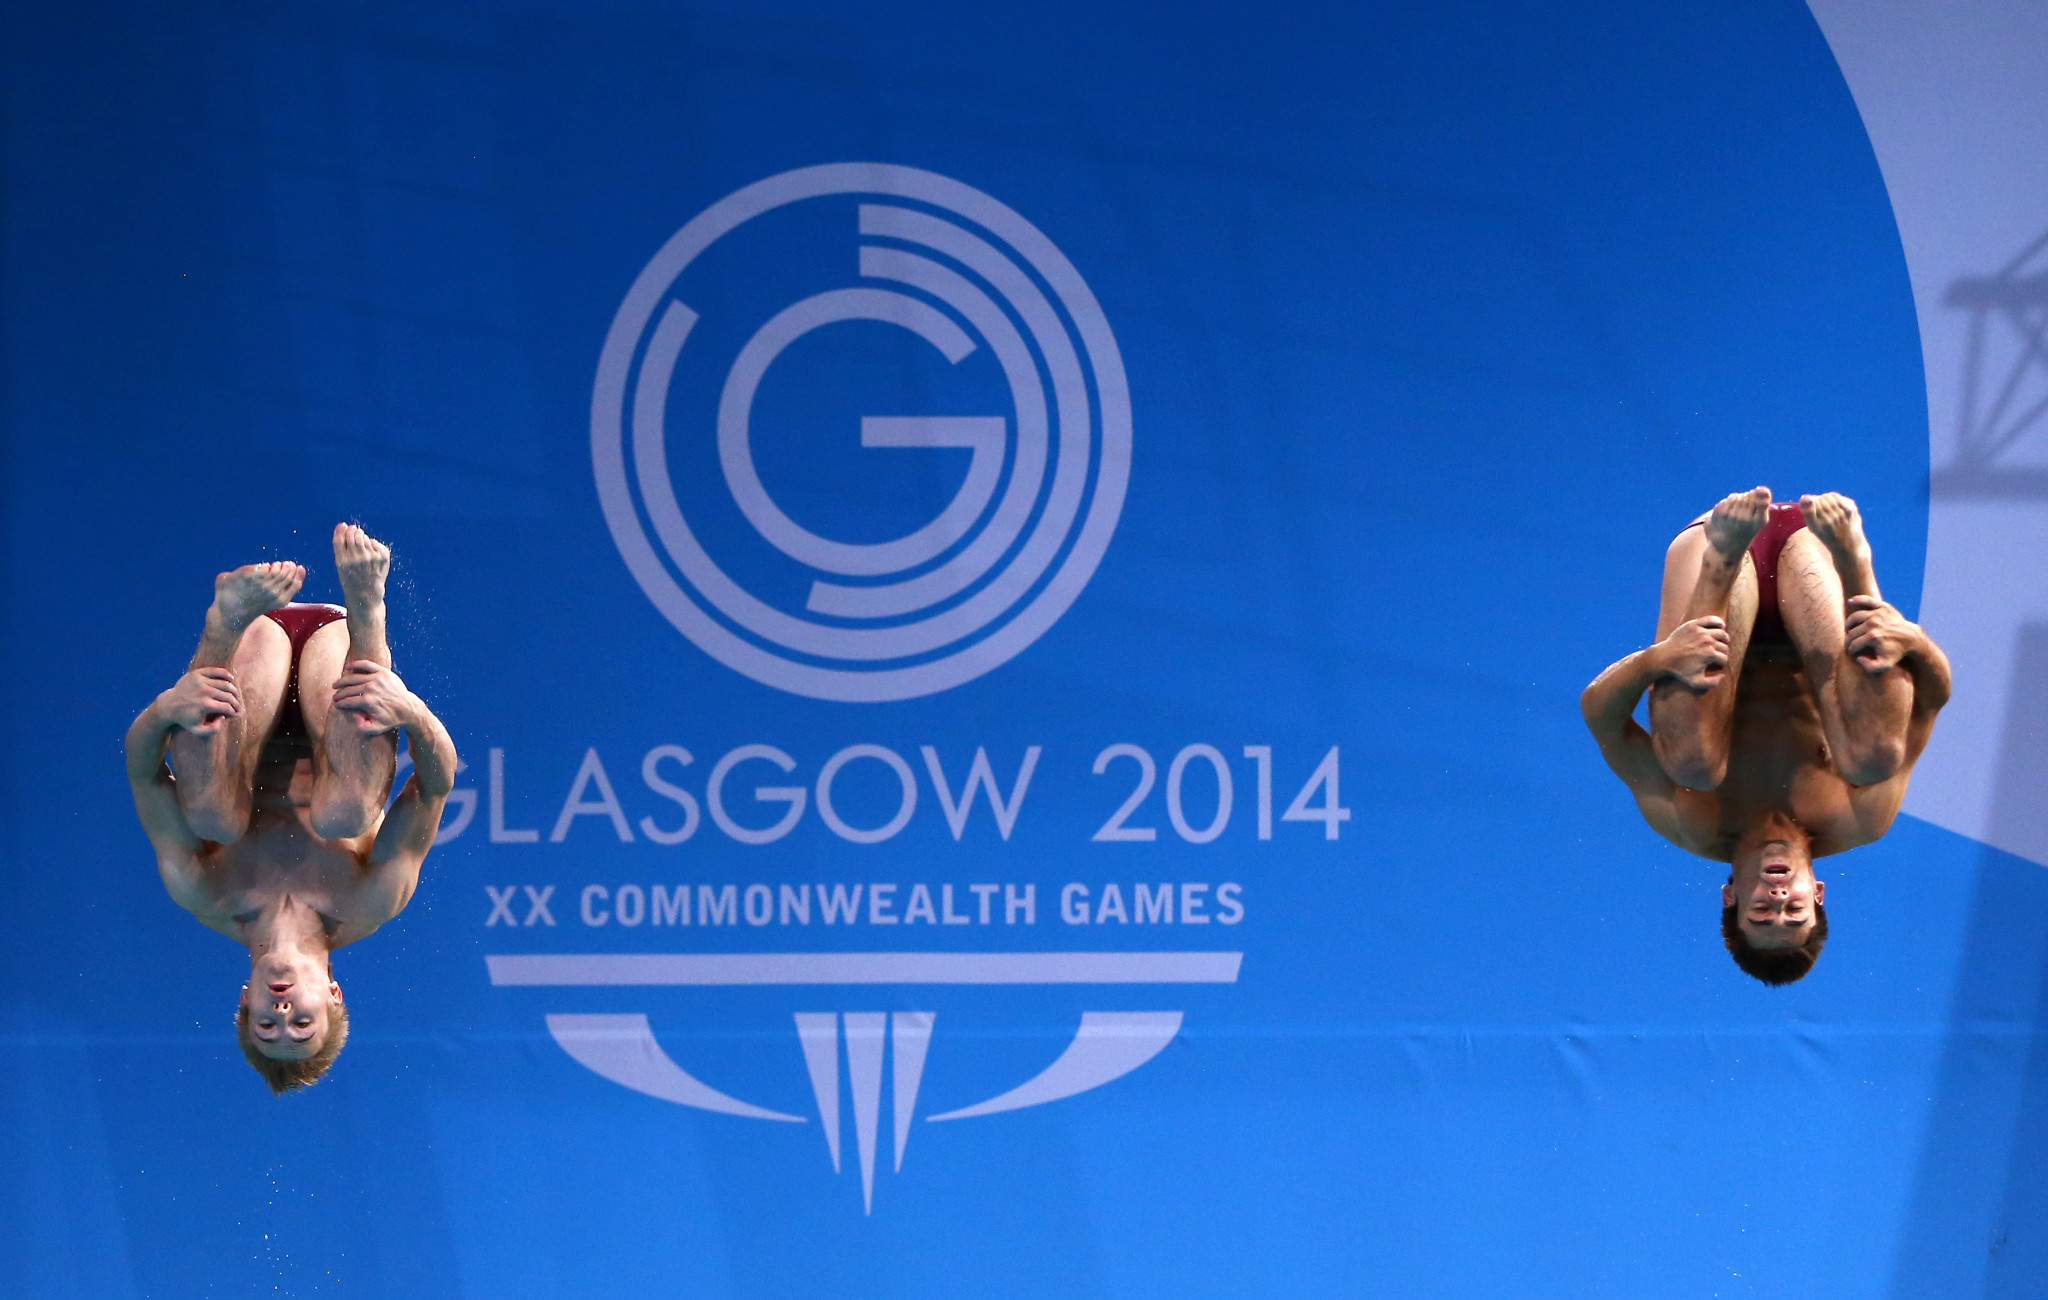 An acclaimed partnership with UNICEF was part of the Glasgow 2014 Commonwealth Games ©Getty Images